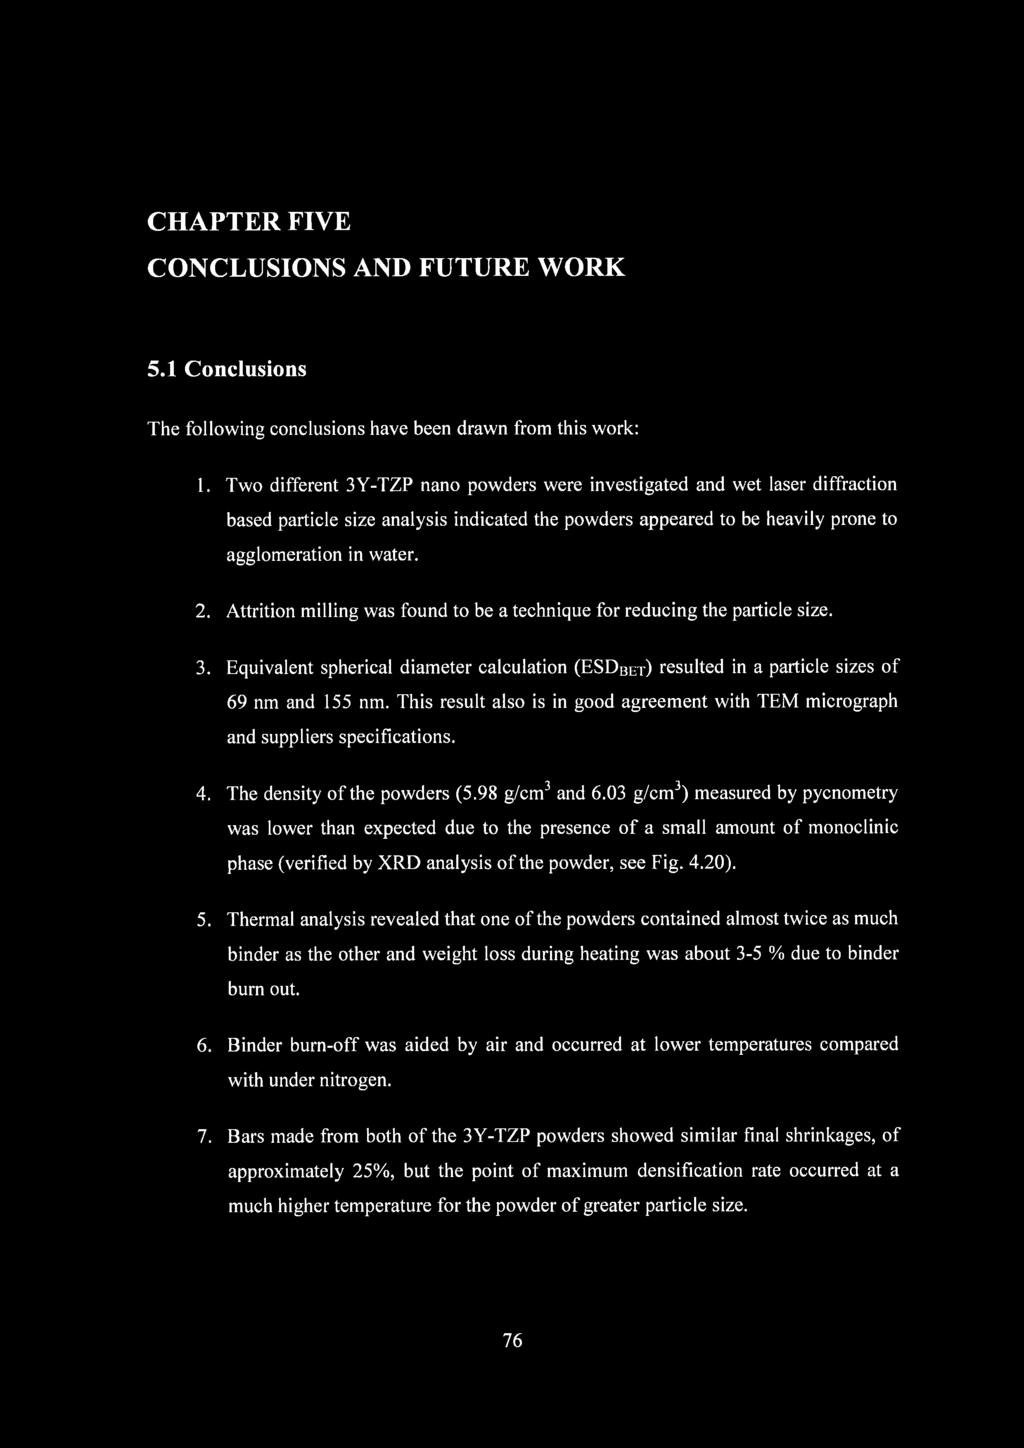 CHAPTER FIVE CONCLUSIONS AND FUTURE WORK 5.1 Conclusions The fo llo w in g conclusions have been drawn from this w ork: 1.